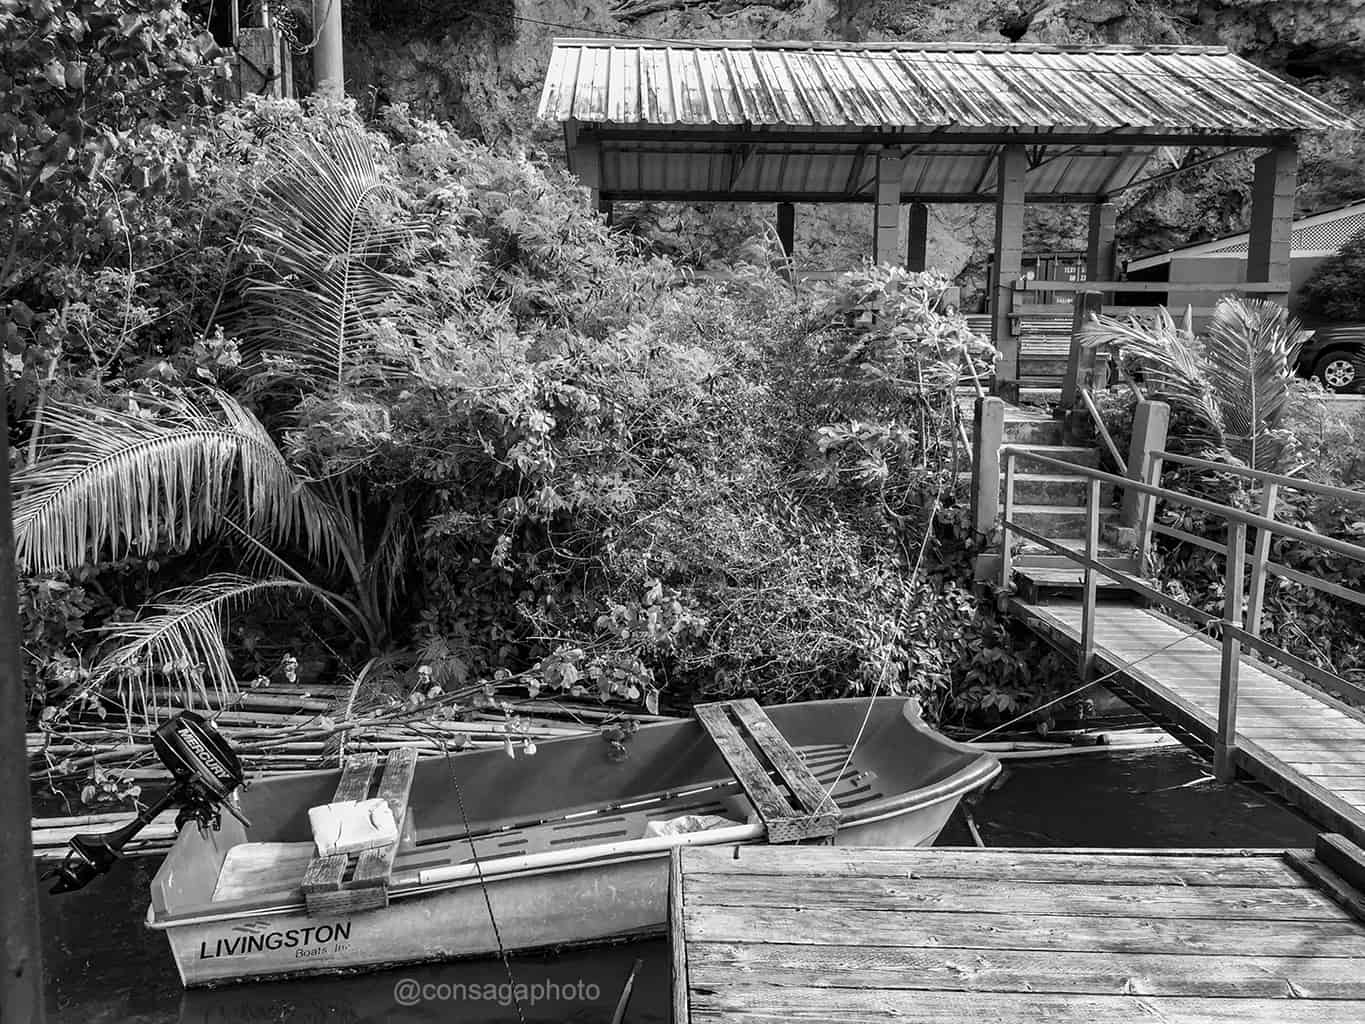 black and white river cruise black and white culture culture and tradition carabao and animal sanctuary hiking on guam natural beauty An Outdoor Adventure of culture and history of guam with a River cruise Things to do on Guam Photo Walk Tour with Victor Consaga